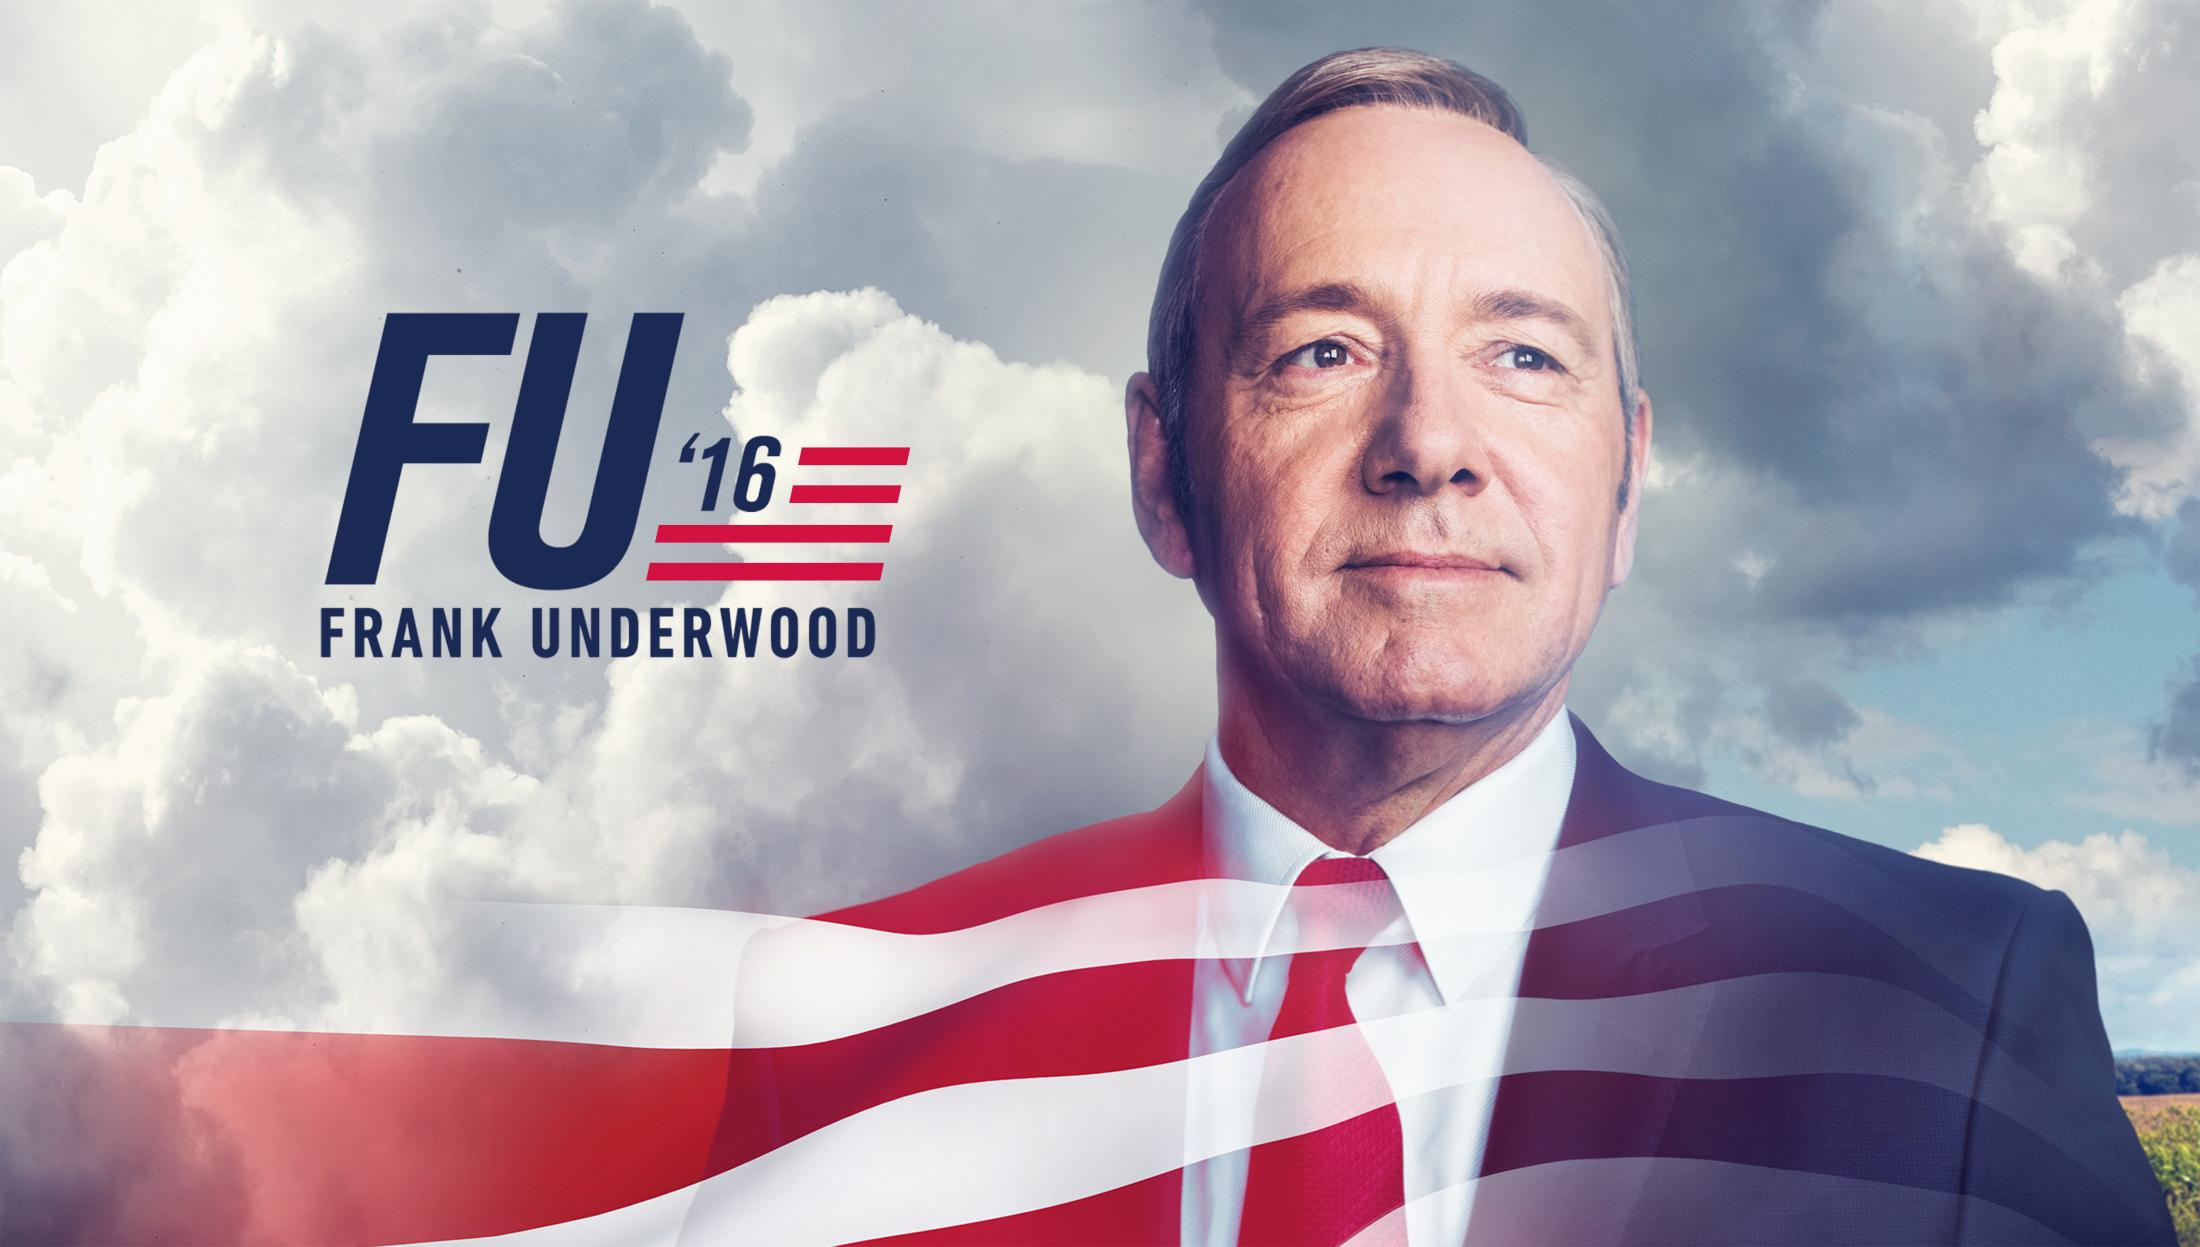 Thumbnail for House of Cards- FU2016